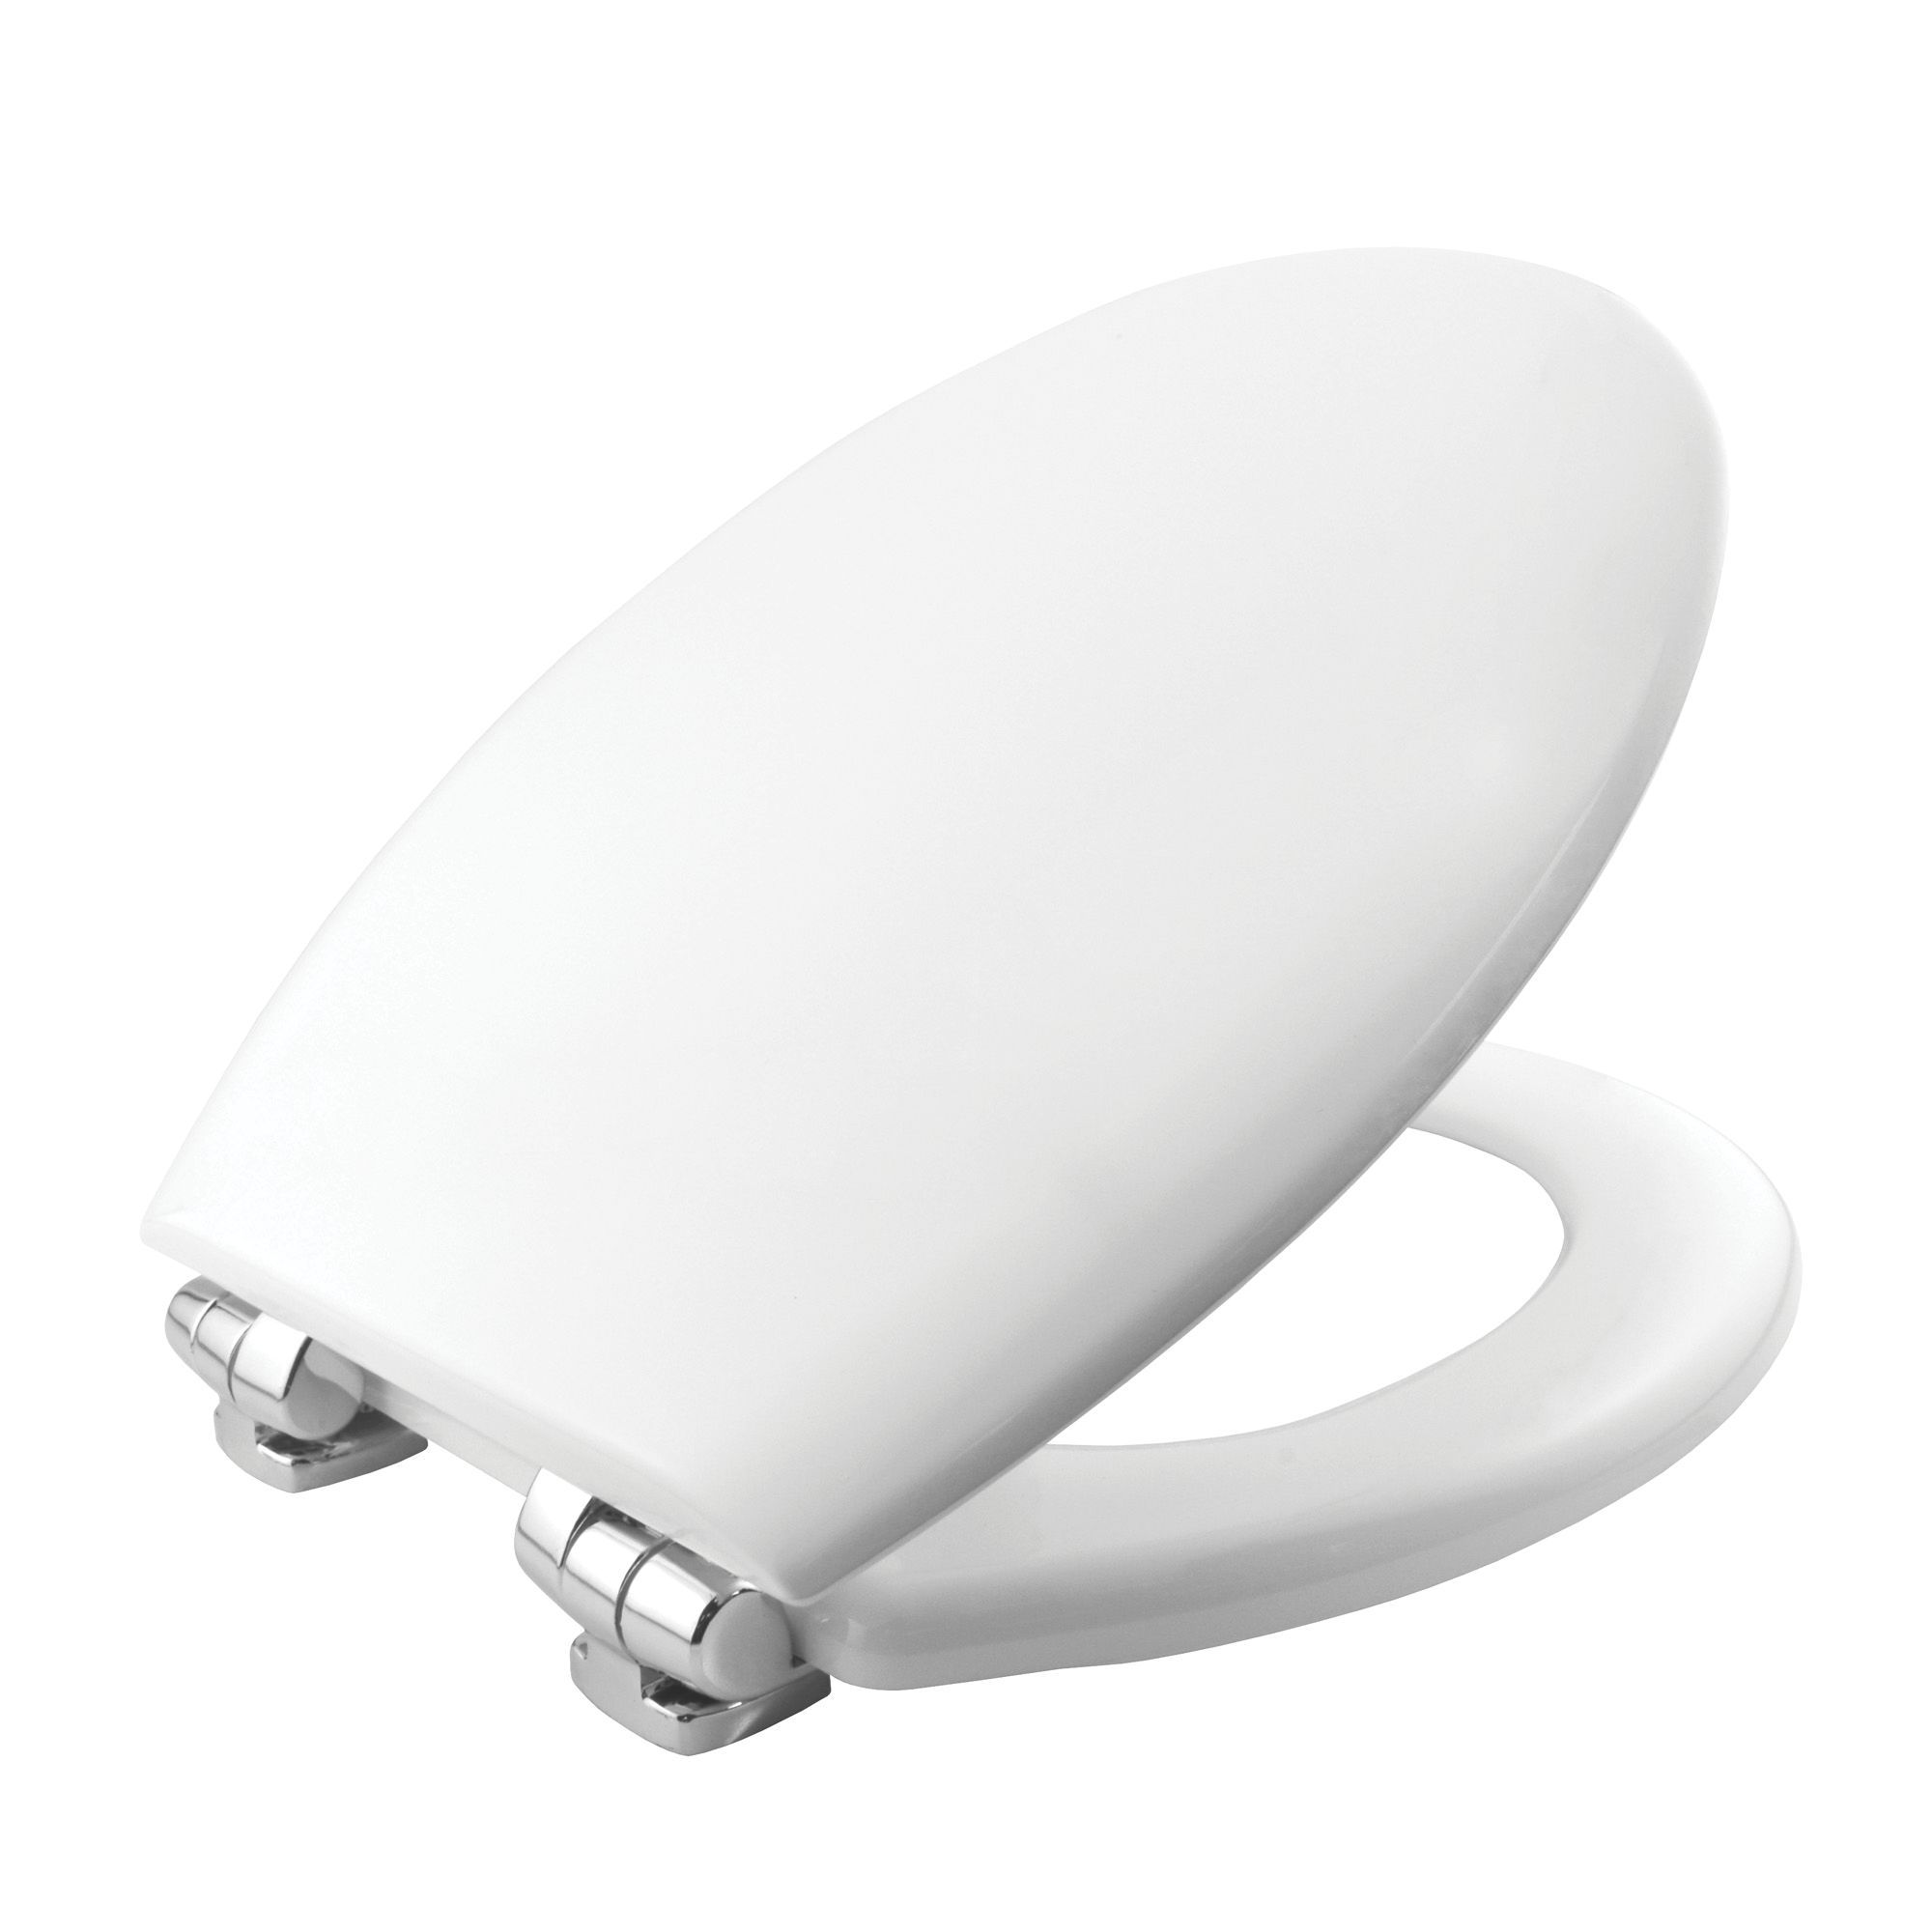 Bemis New York White Soft Close Toilet Seat Departments